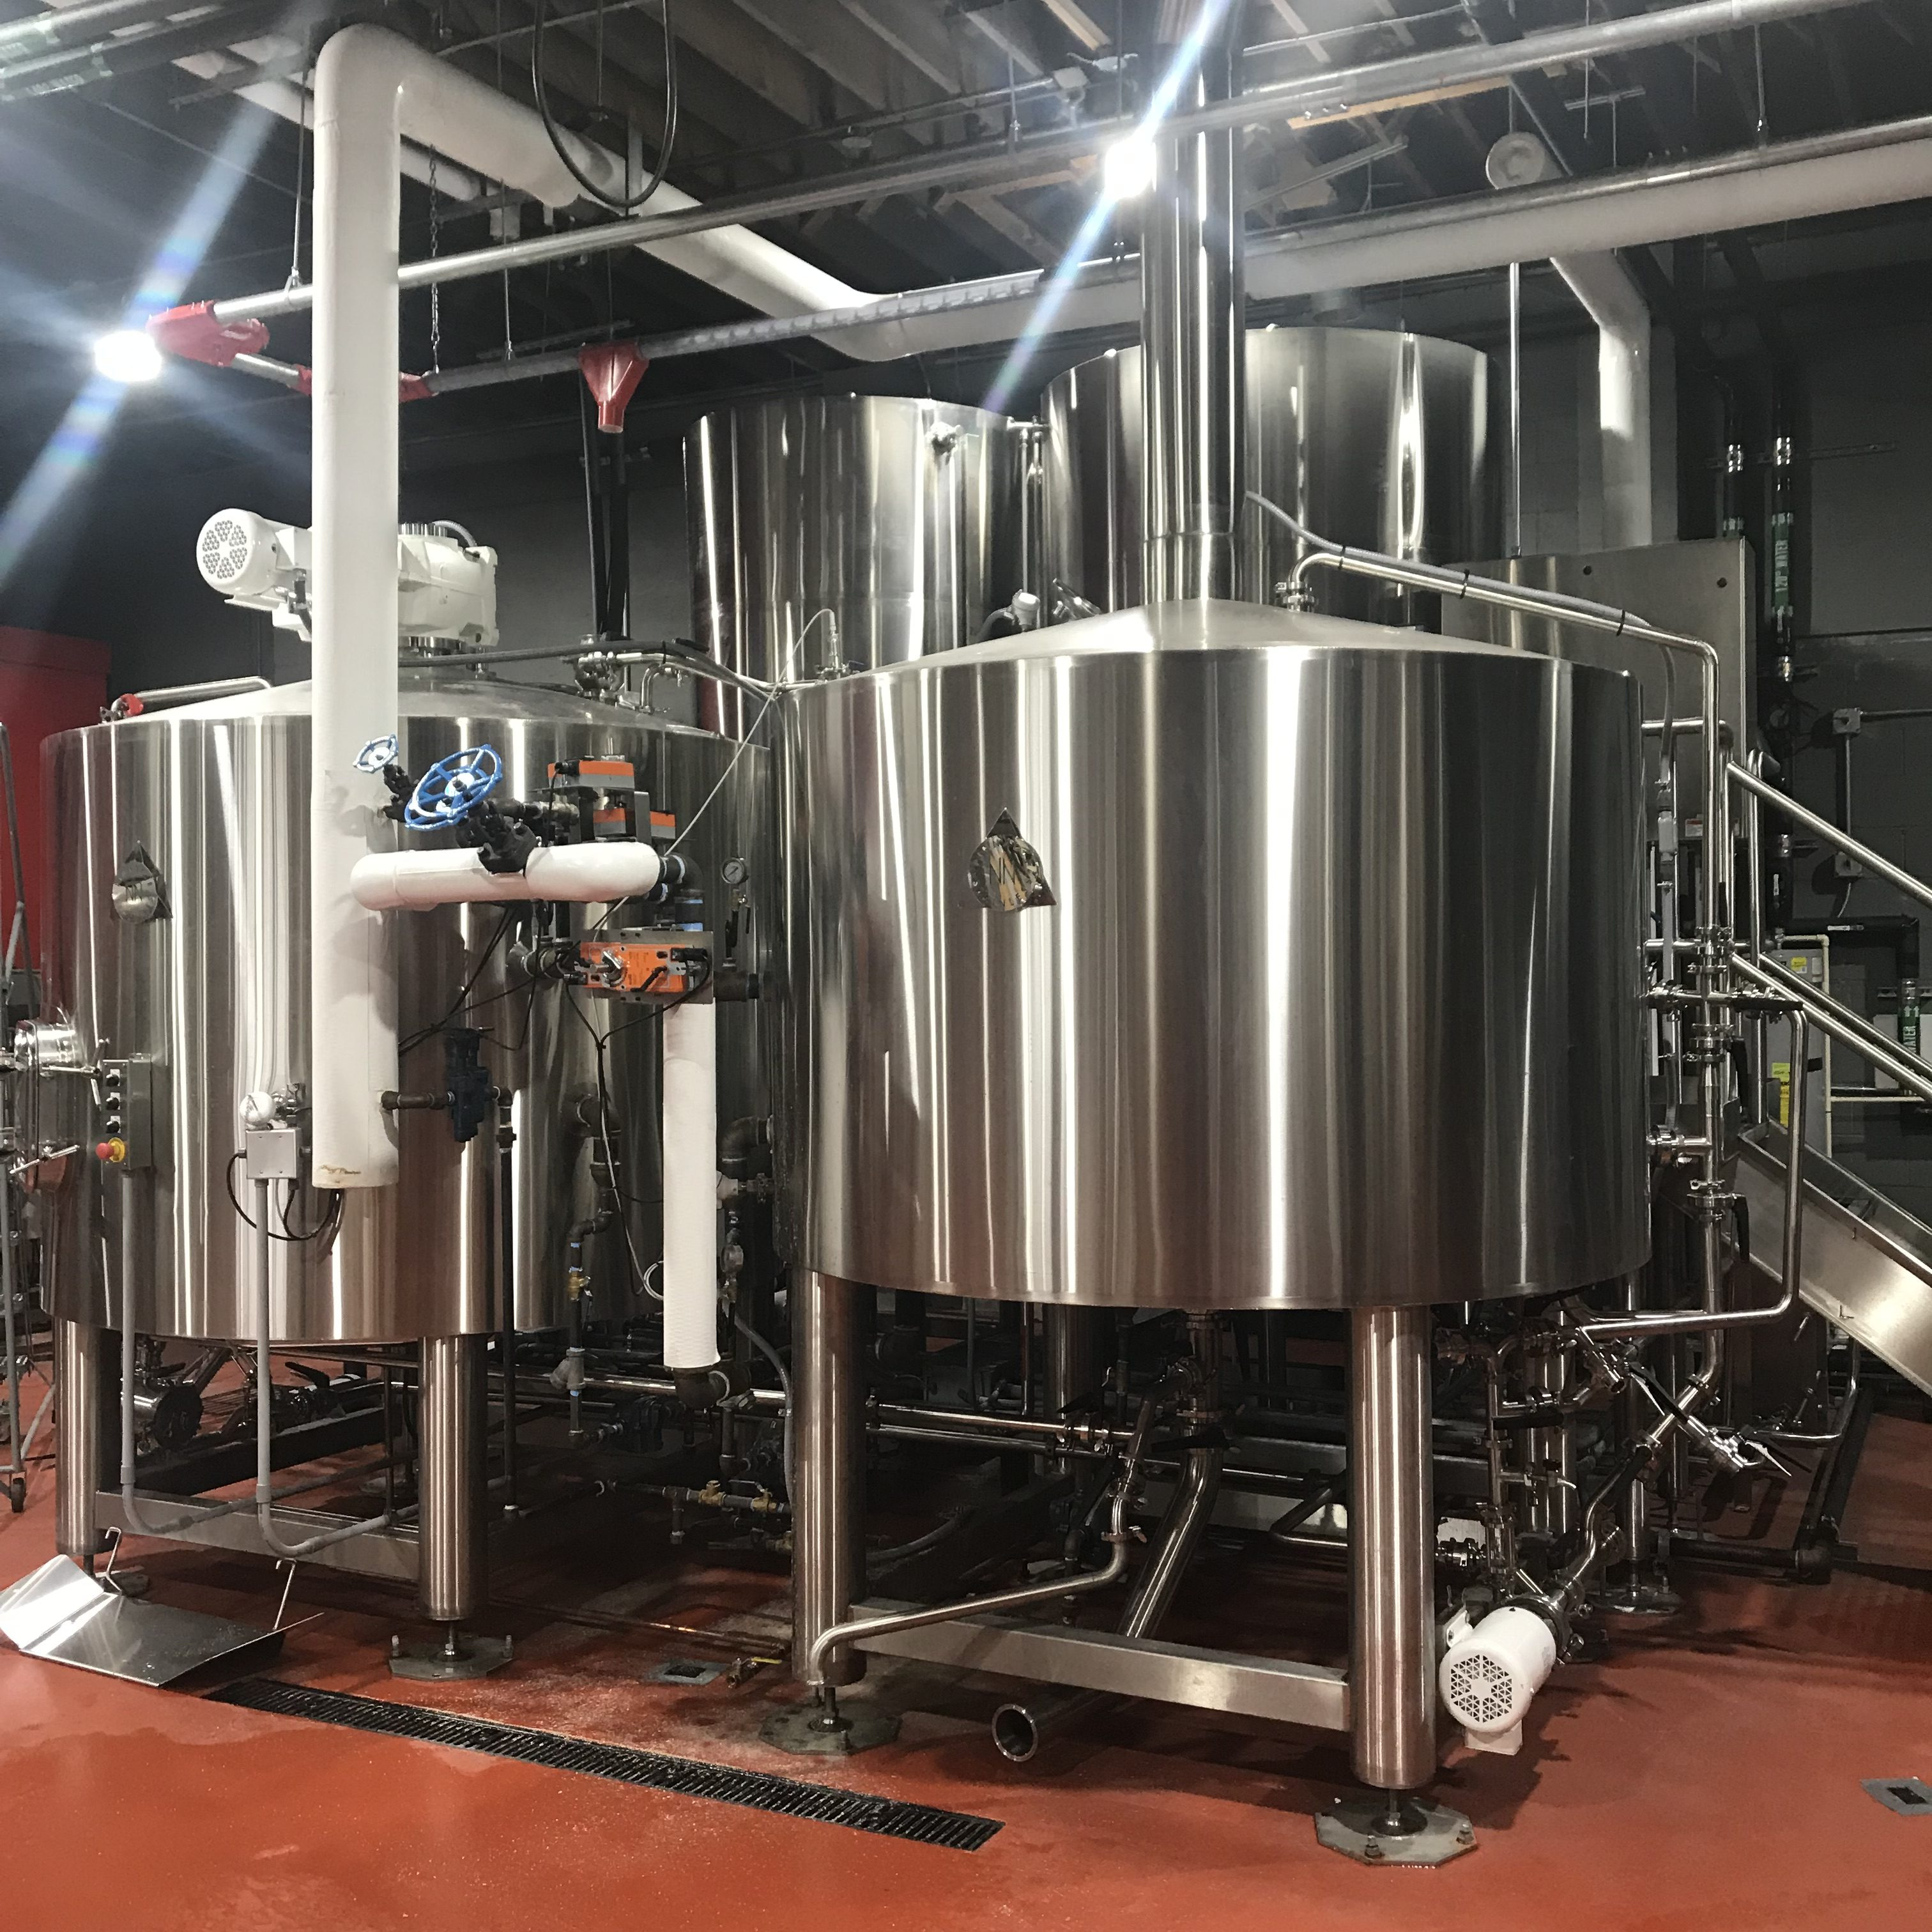 The shiny new 15-barrel brewhouse inside E9 Brewing Co. (image courtesy of E9 Brewing Co.)